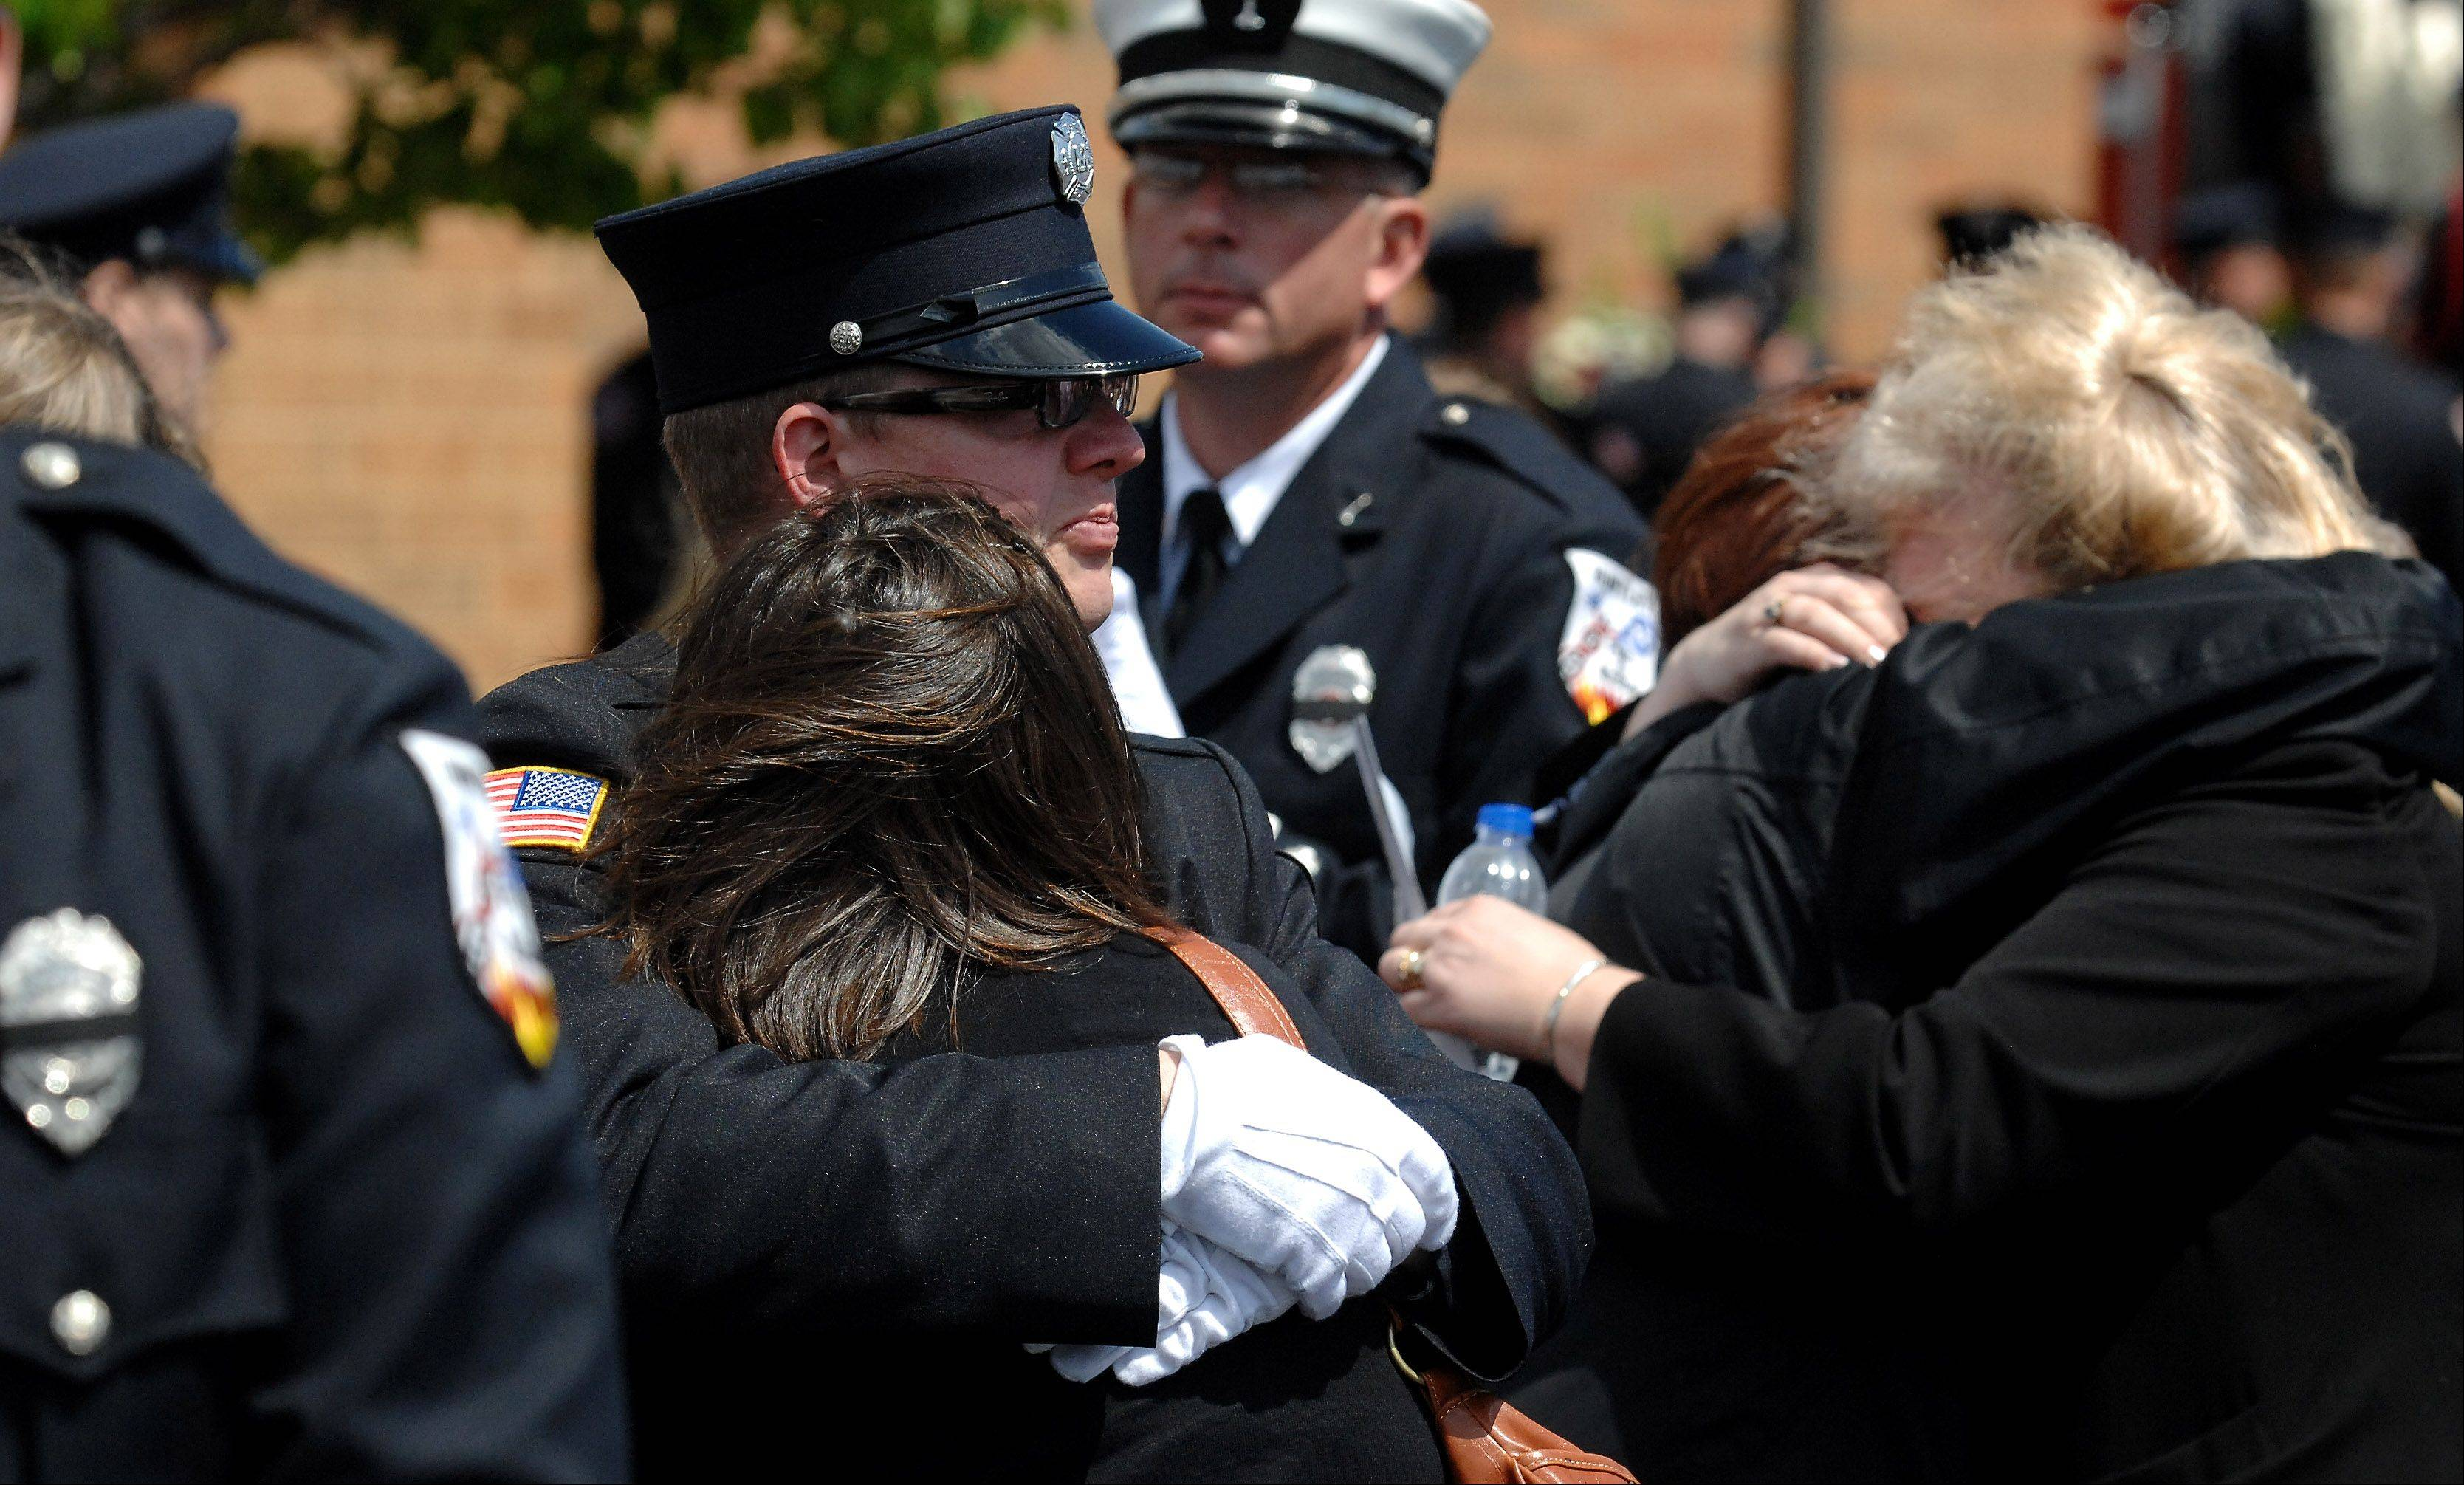 Rick West/rwest@dailyherald.com Mourners grieve after the funeral service for Huntley Fire Capt. John Winkelman at St. John's Lutheran Church in Union. Winkelman was killed in a motorcycle accident last week in Crystal Lake and because he was killed on duty, he received full firefighters honors during his service and burial.